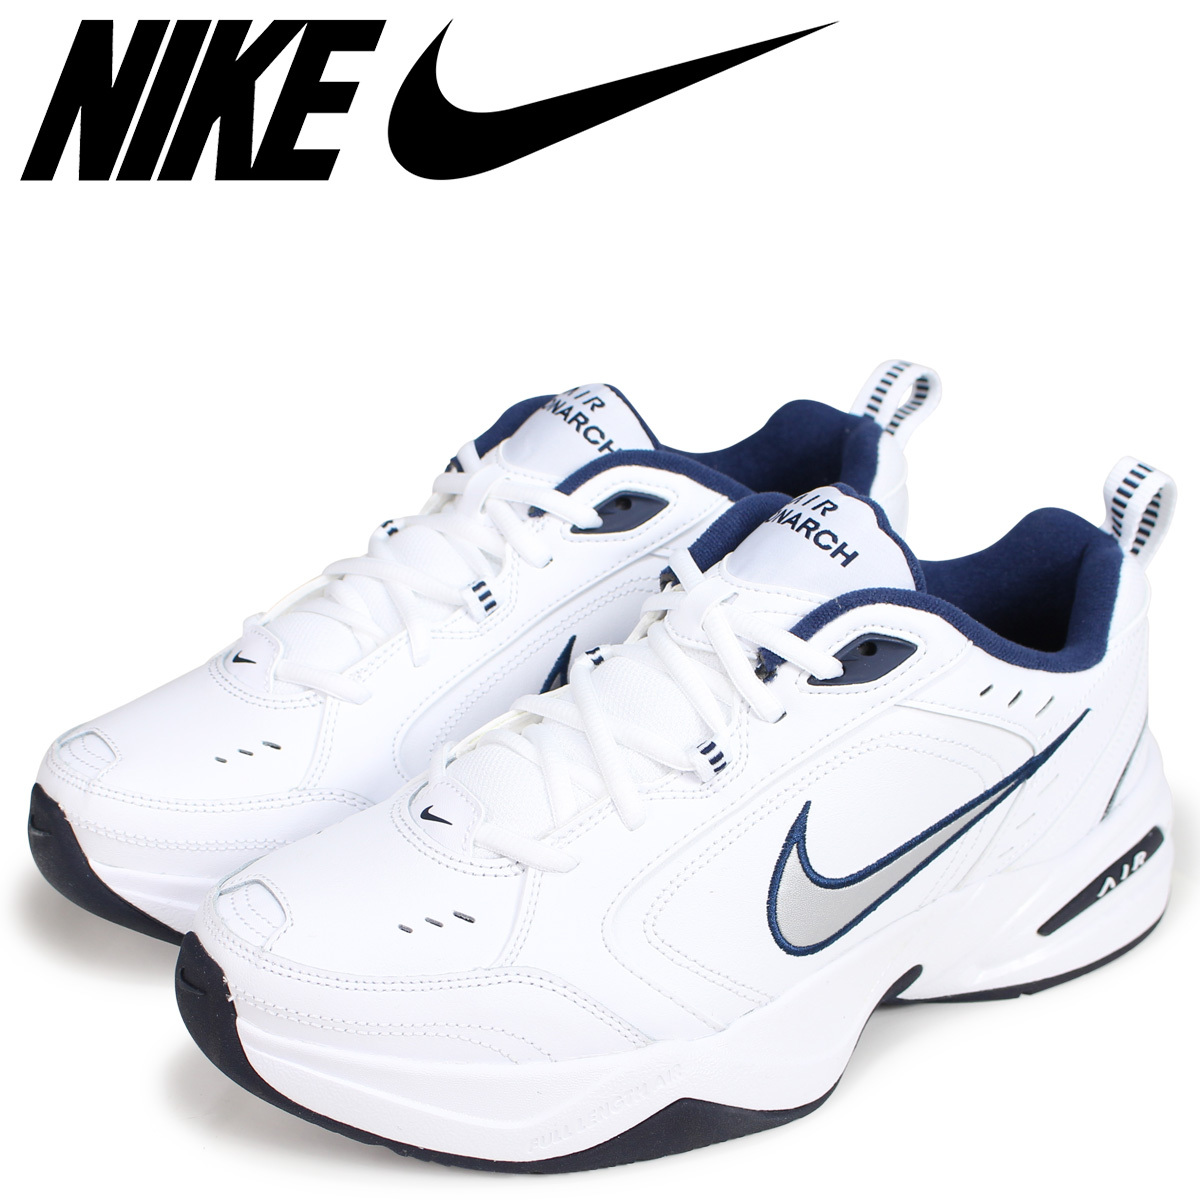 new style 57b9d 79402 NIKE ナイキエアモナーク 4 sneakers men AIR MONARCH IV DAD SHOES ダッドシューズ 415,445-102  white load planned Shinnyu load in reservation product 1015 ...